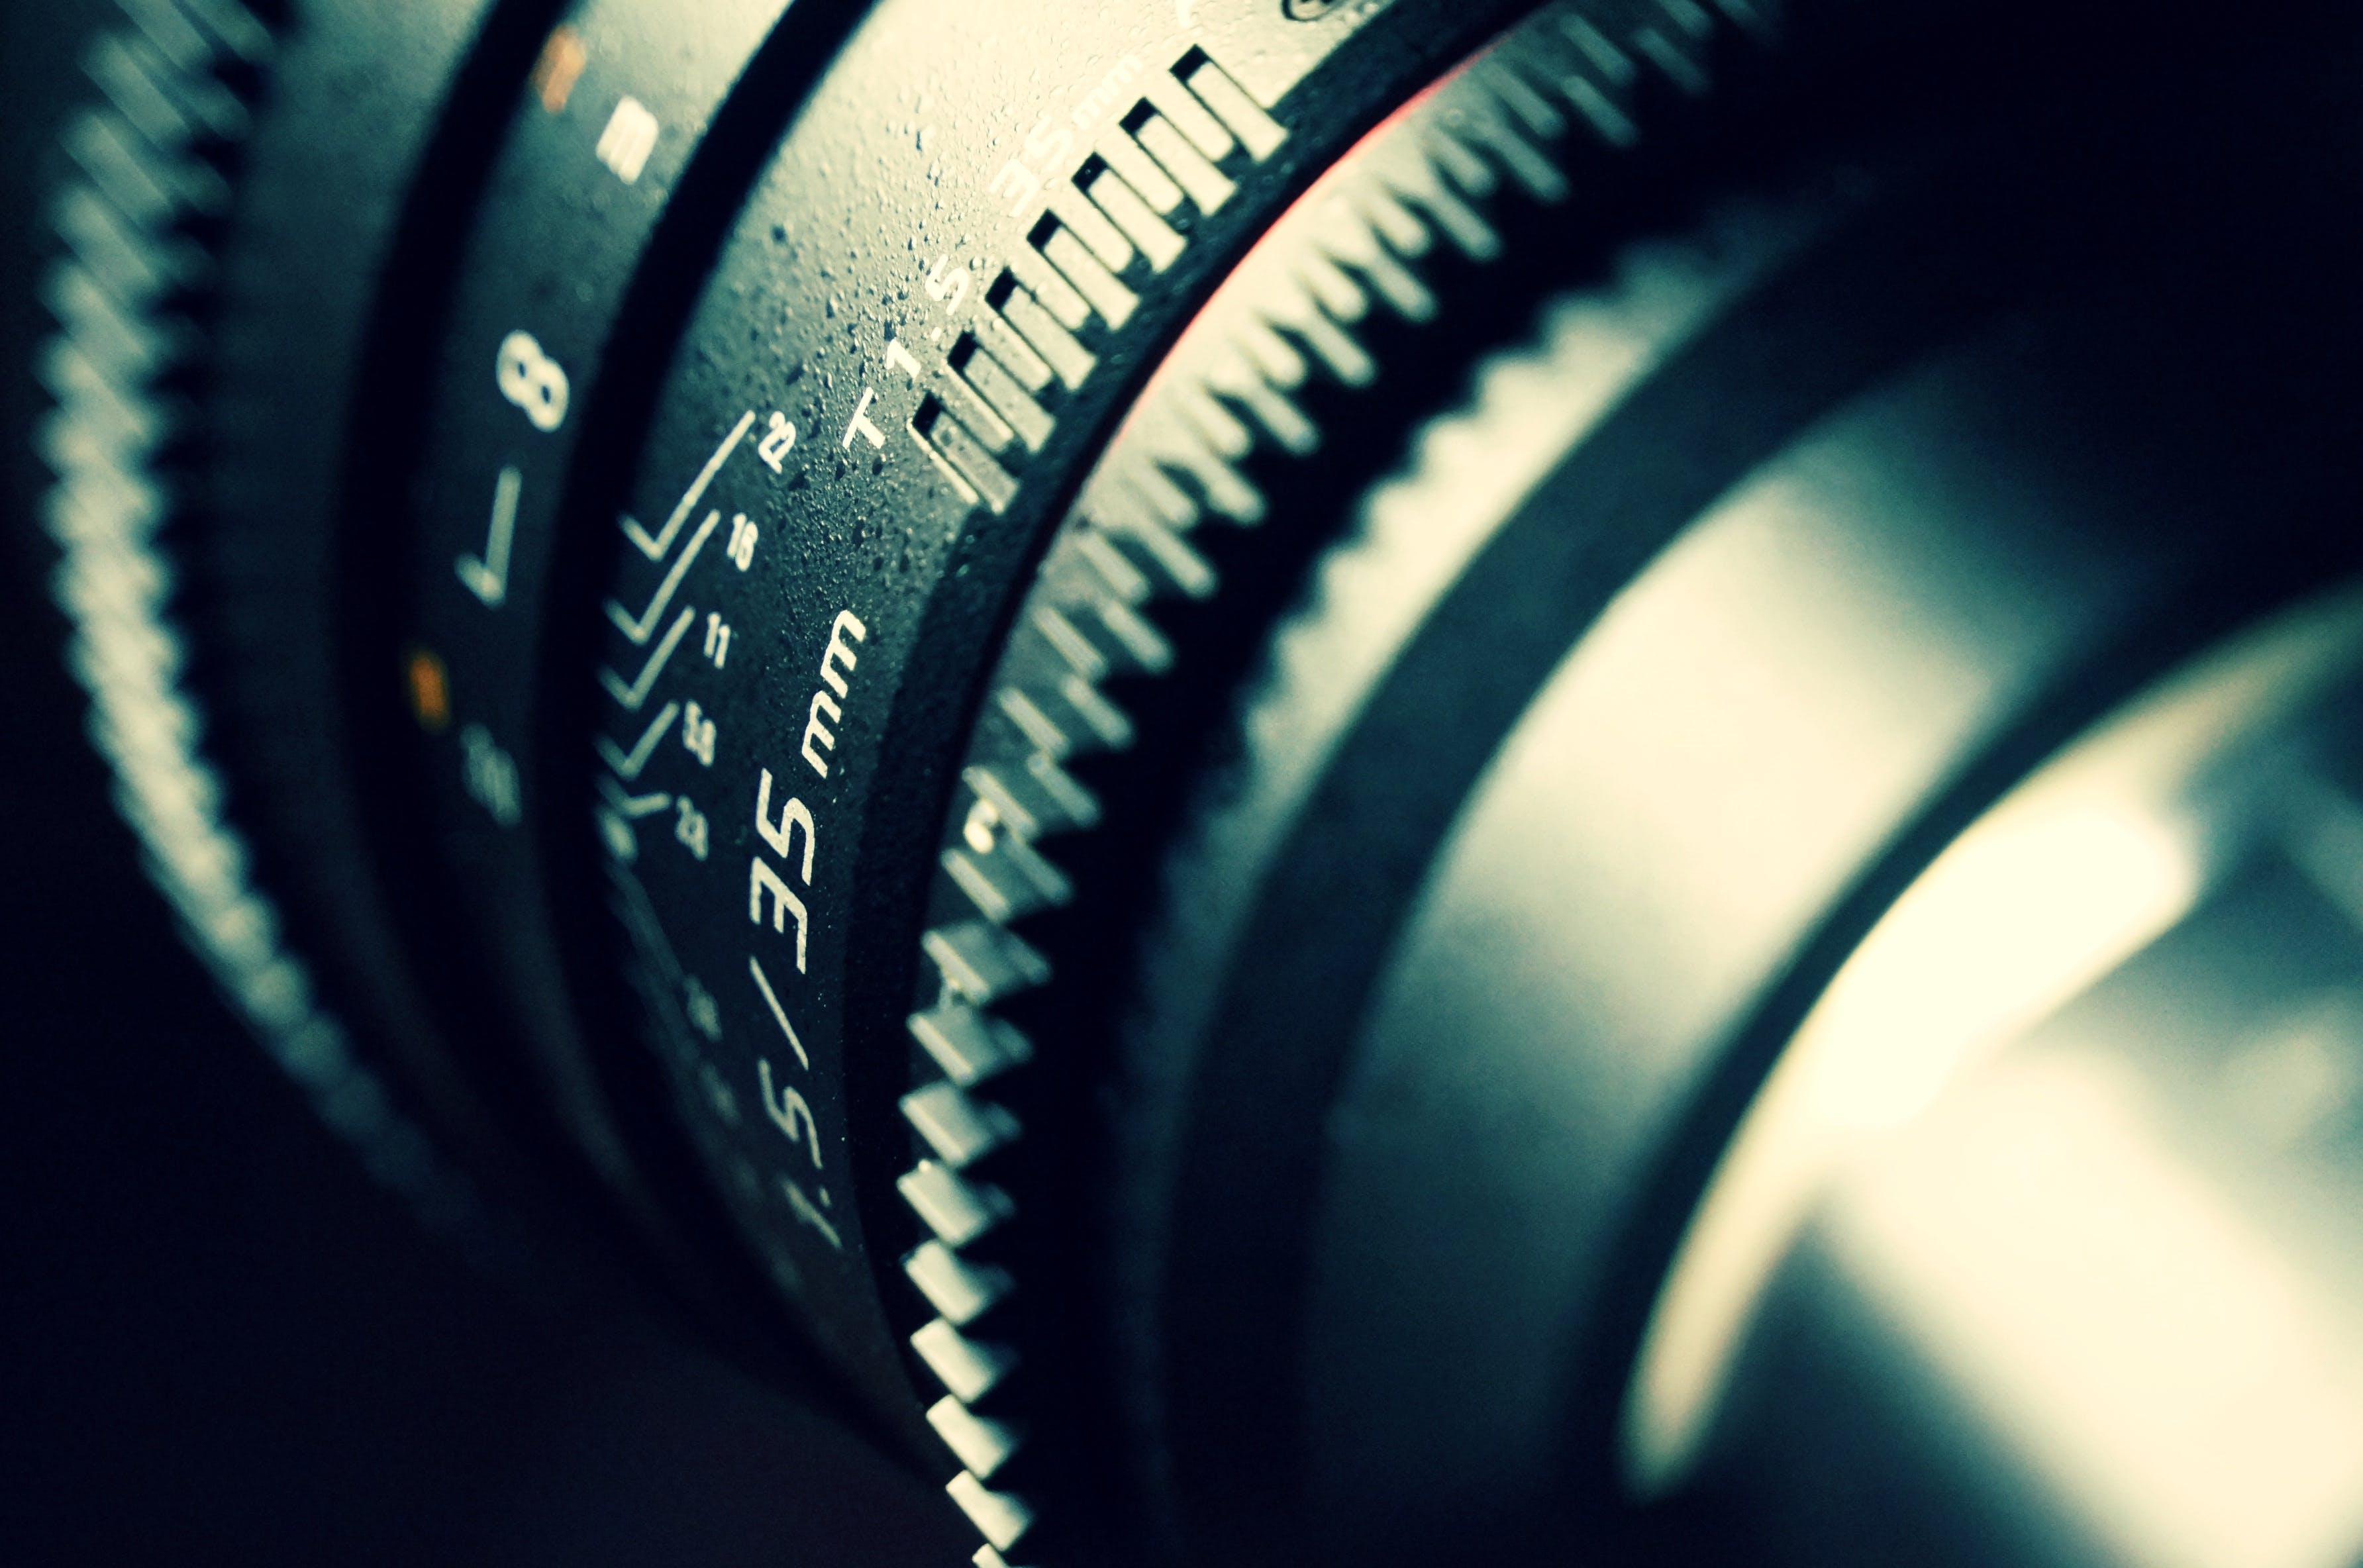 Closeup Photography of Zoom Lens